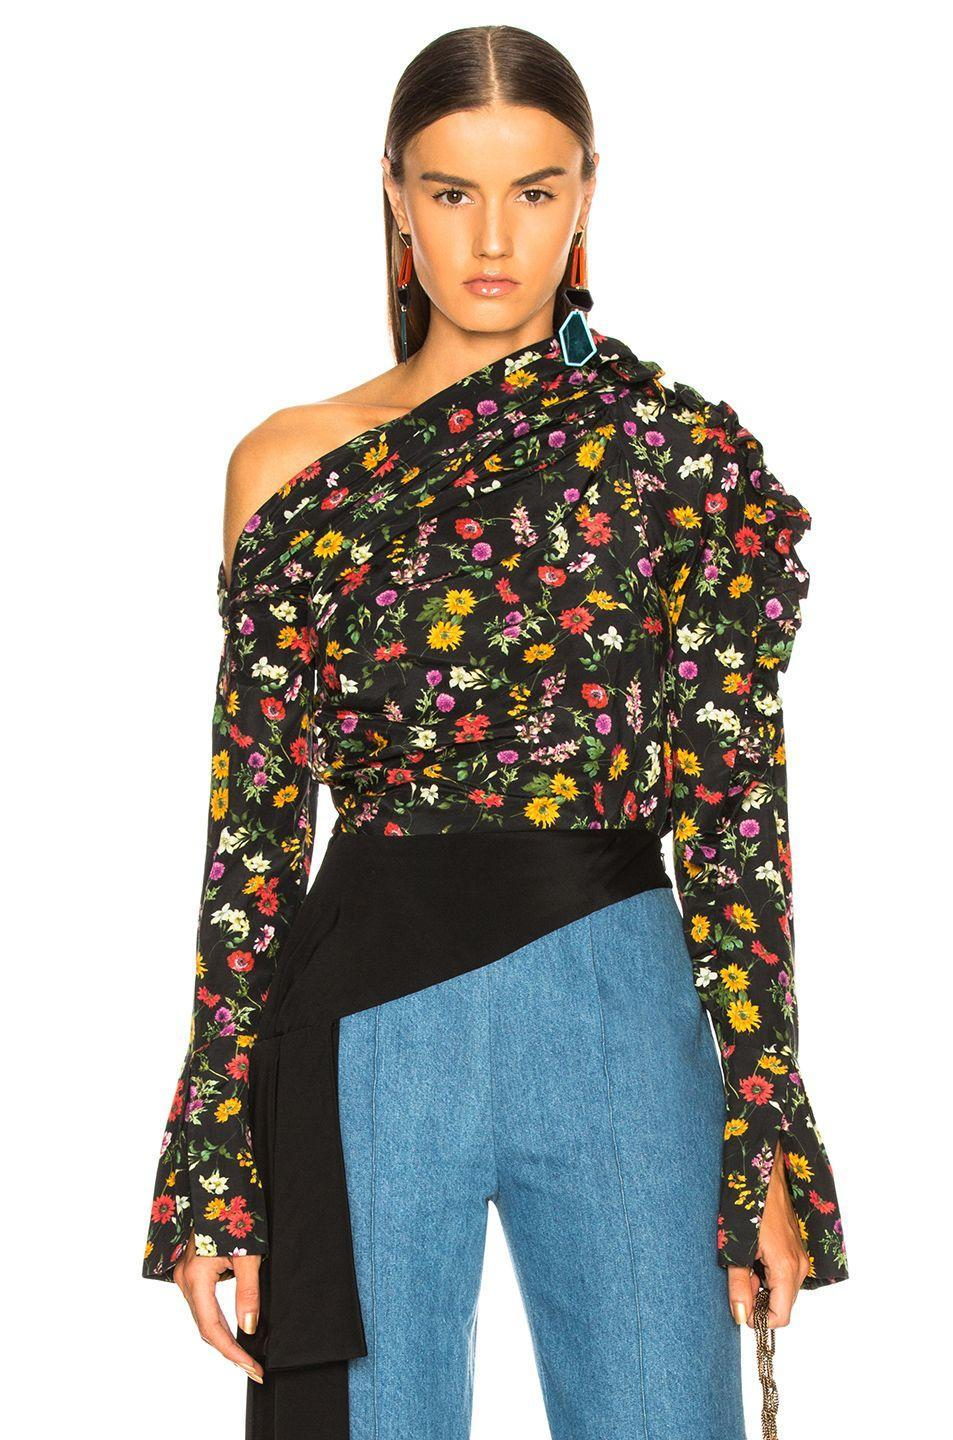 You can never have enough pretty blouses. Available in sizes 0 to 8.